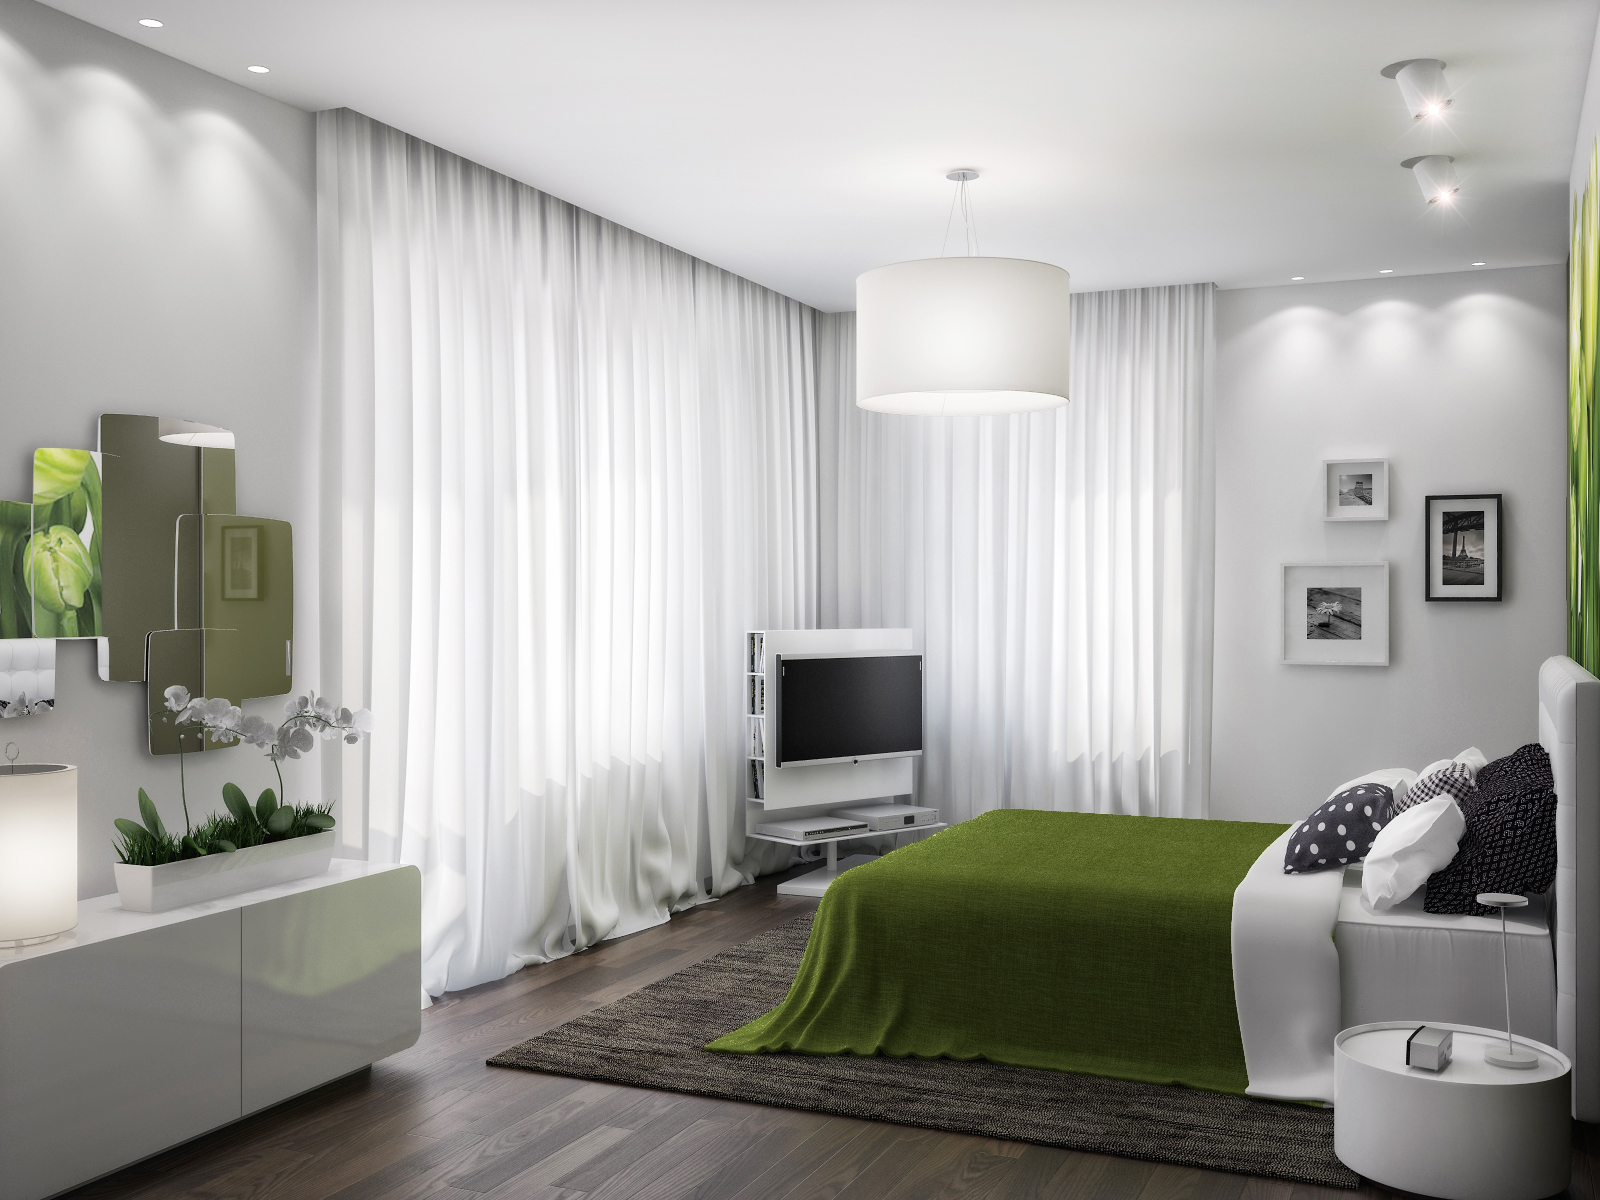 Green White Bedroom Scheme Interior Design Ideas